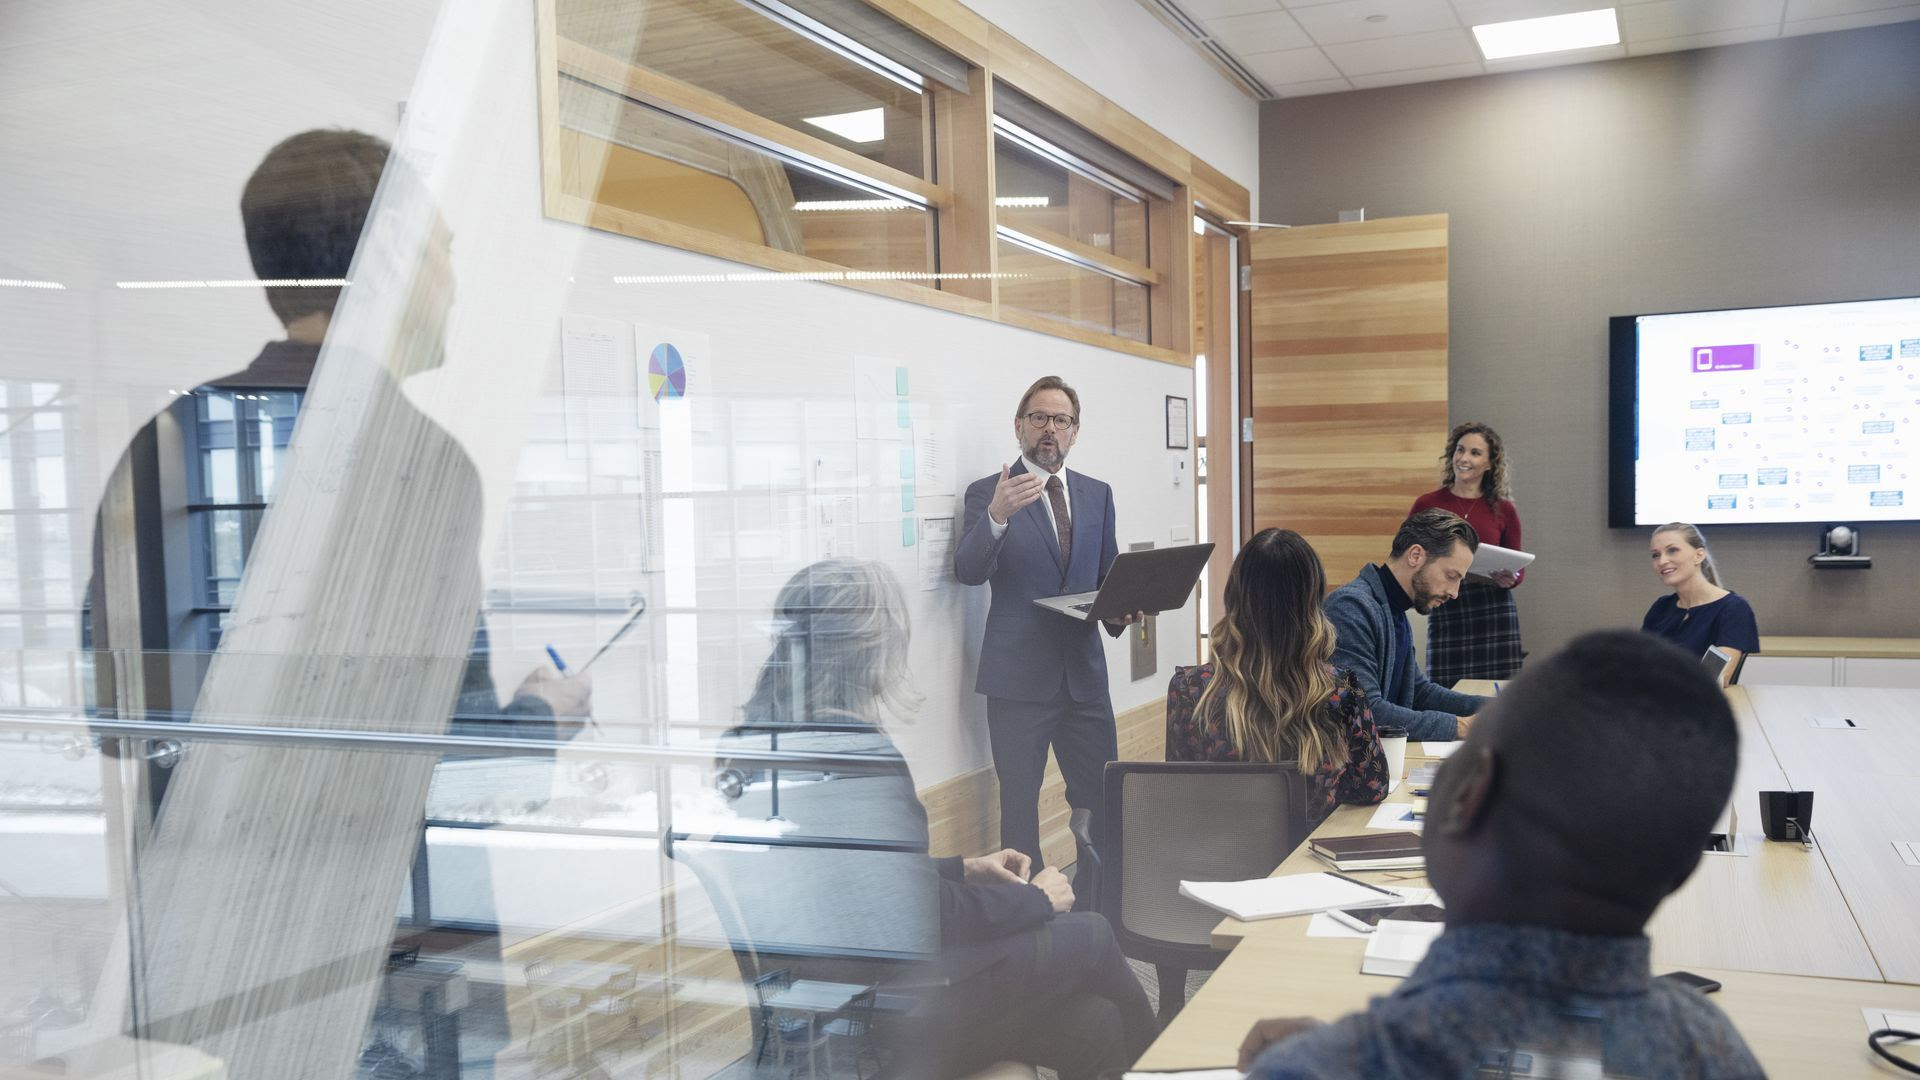 A man giving a presentation to people at his company